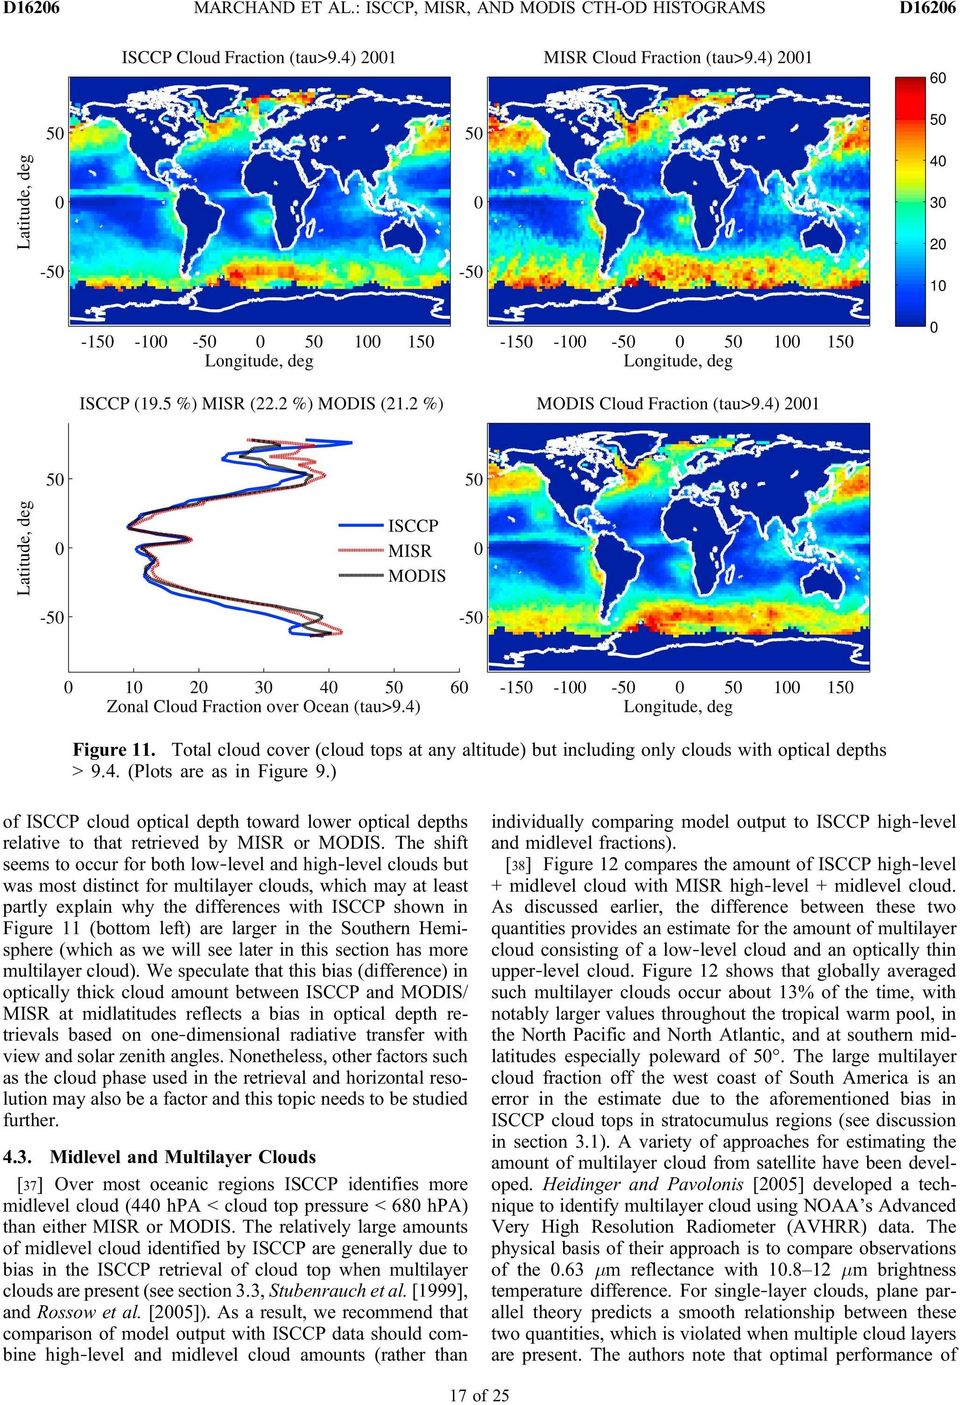 The shift seems to occur for both low level and high level clouds but was most distinct for multilayer clouds, which may at least partly explain why the differences with ISCCP shown in Figure 11